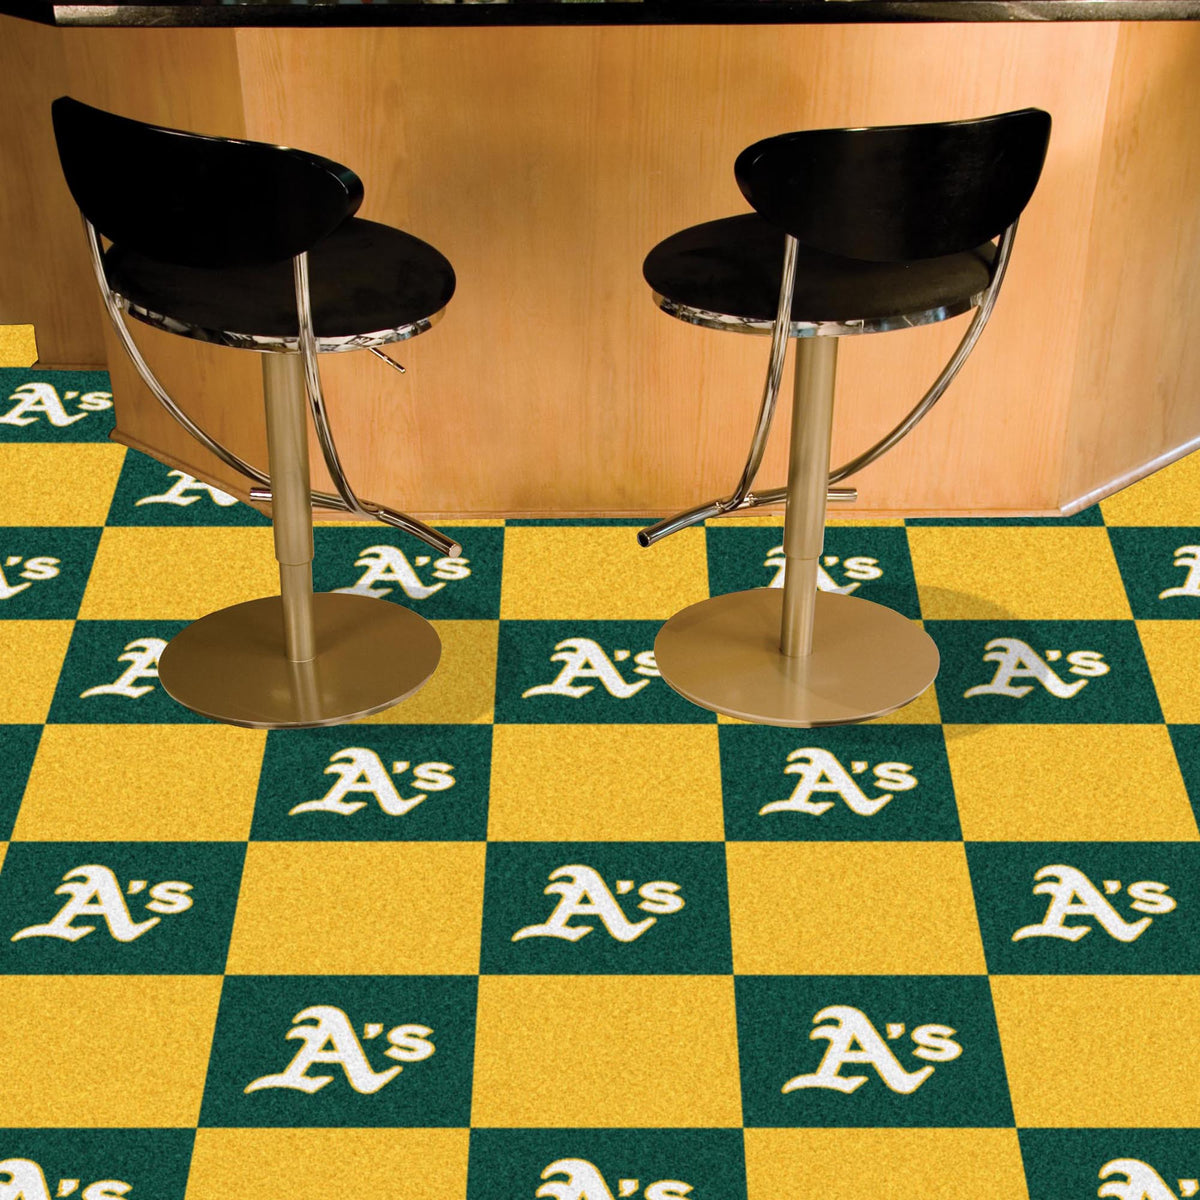 MLB - Team Carpet Tiles MLB Mats, Carpet Tile Flooring, Team Carpet Tiles, MLB, Home Fan Mats Oakland Athletics